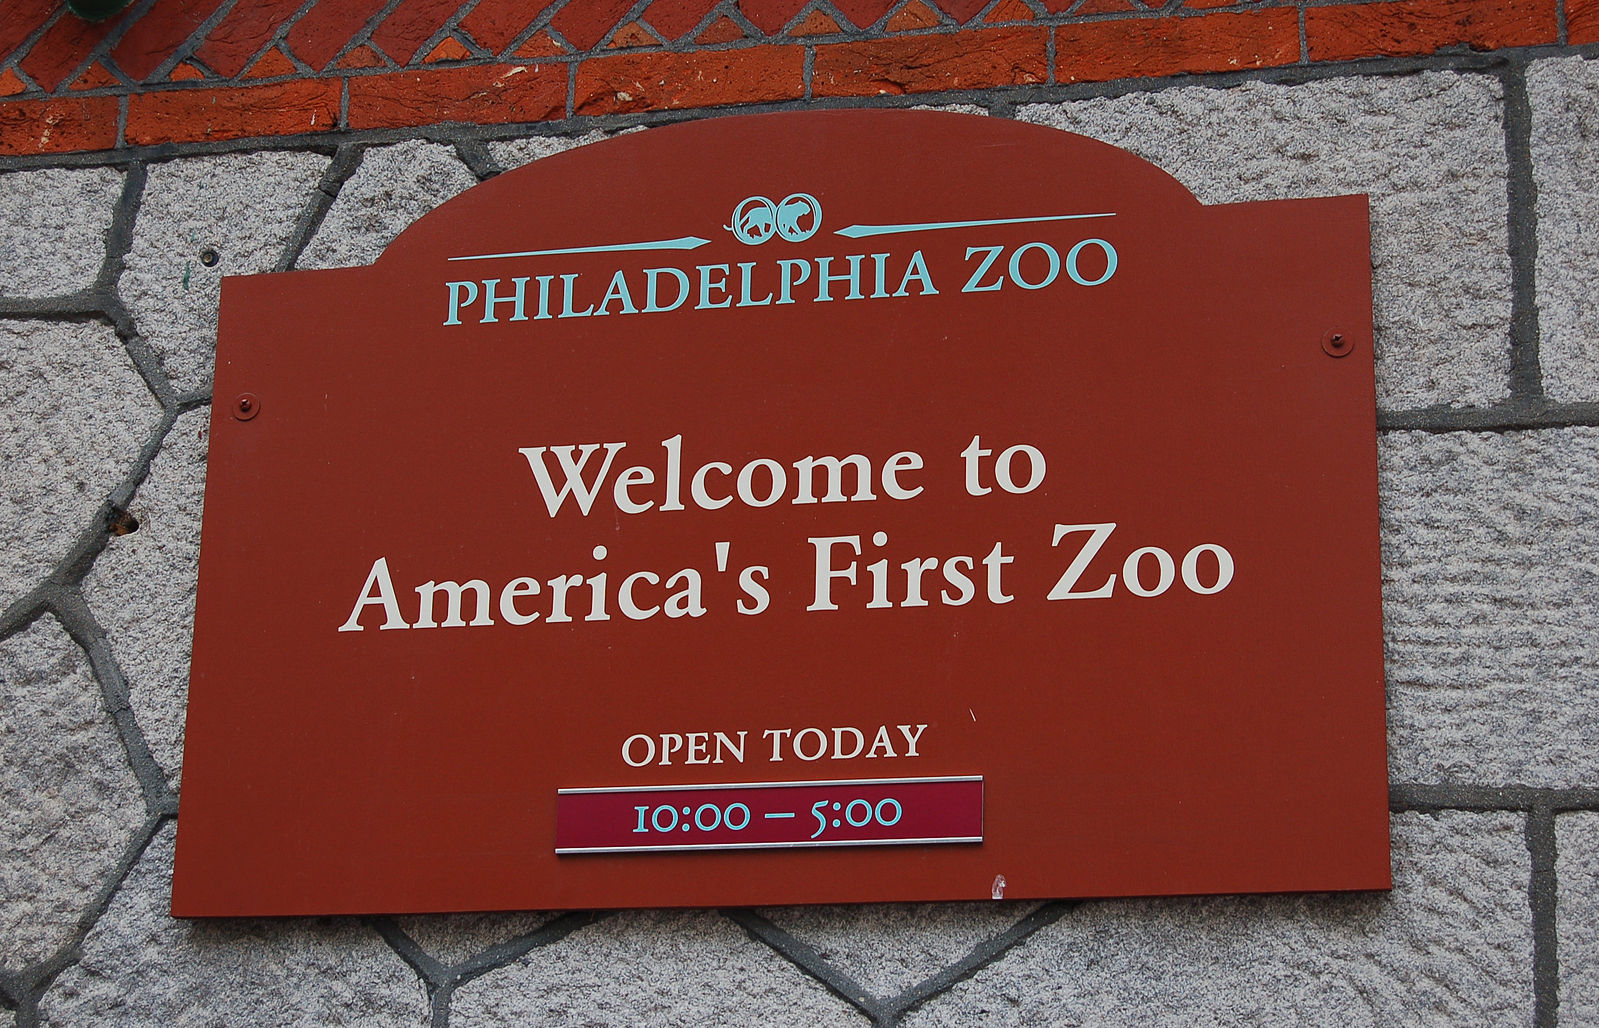 Visiting America's FIRST Zoo is one of the top 9 things to do in Philadelphia with kids. Click over for more ideas and activities.